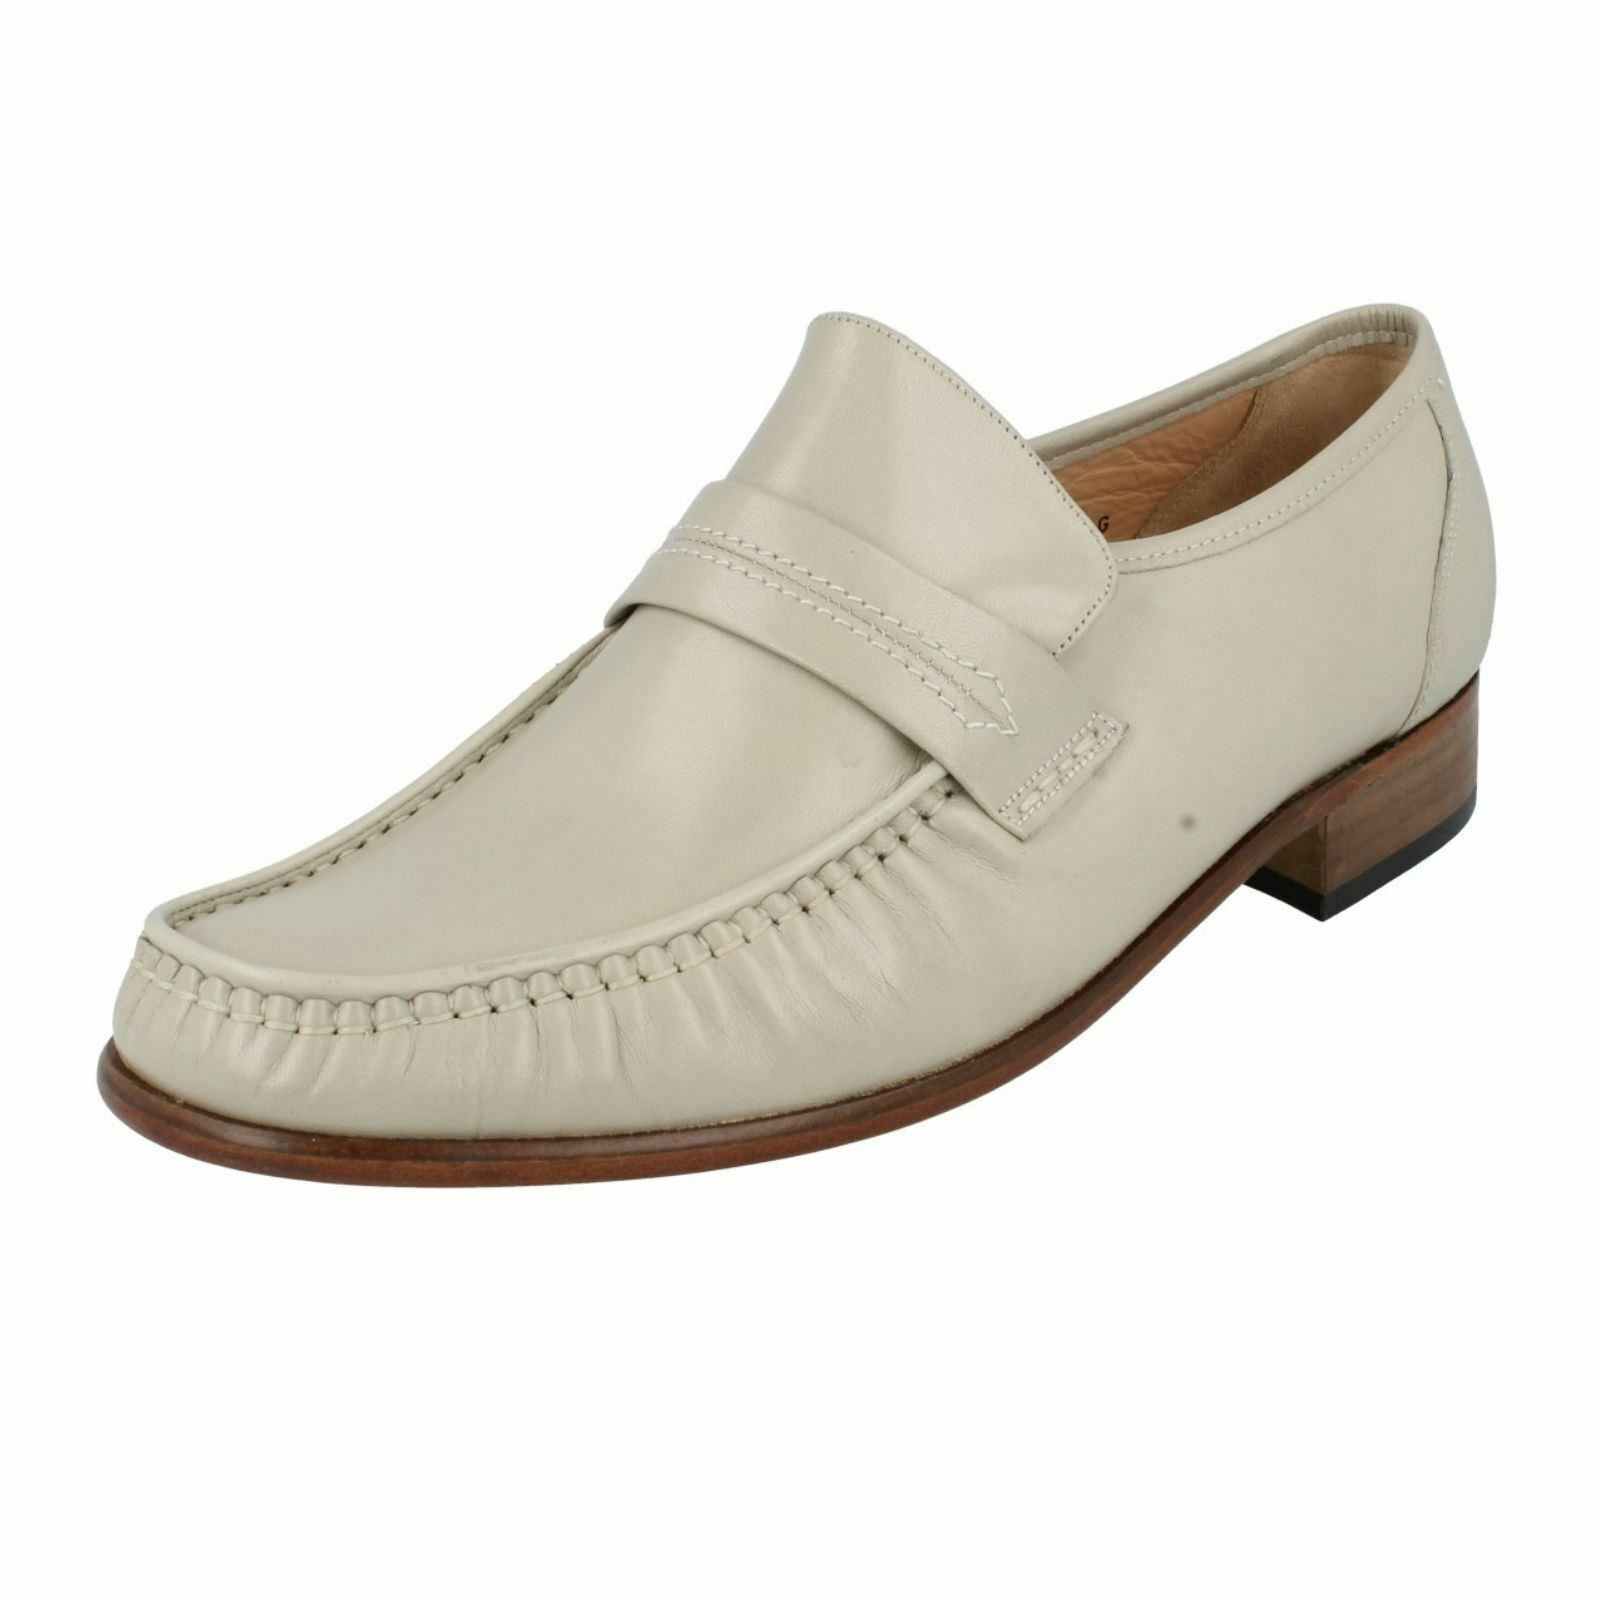 Grenson 'Watford' A Gents Ivory Leather Loafer True Moccasin Slip On Loafer Leather Shoe. G Fit 6b1a1e